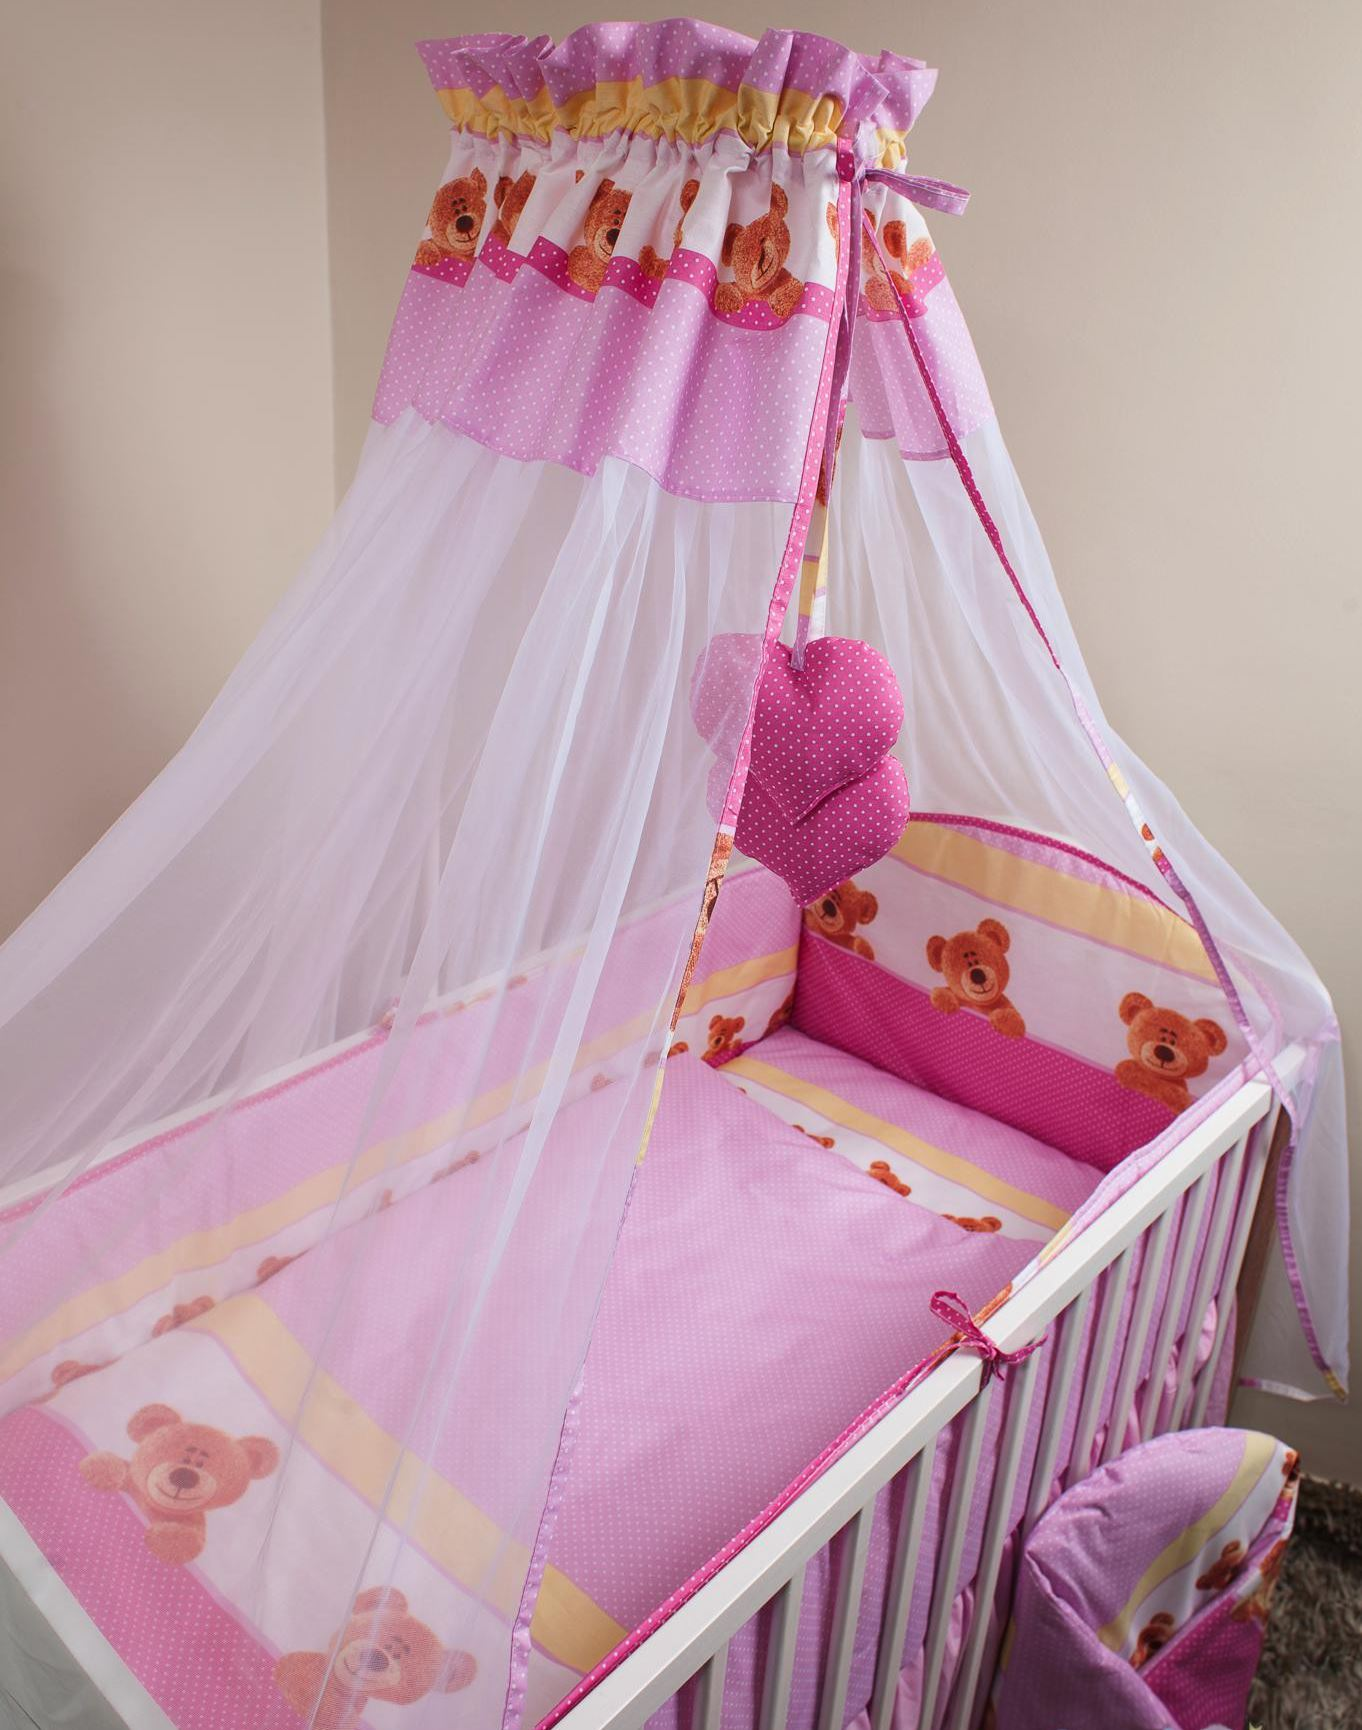 Baby Canopy For Bedroom: CHIFFON CANOPY DRAPE MOSQUITO NET + HOLDER FITS BABY